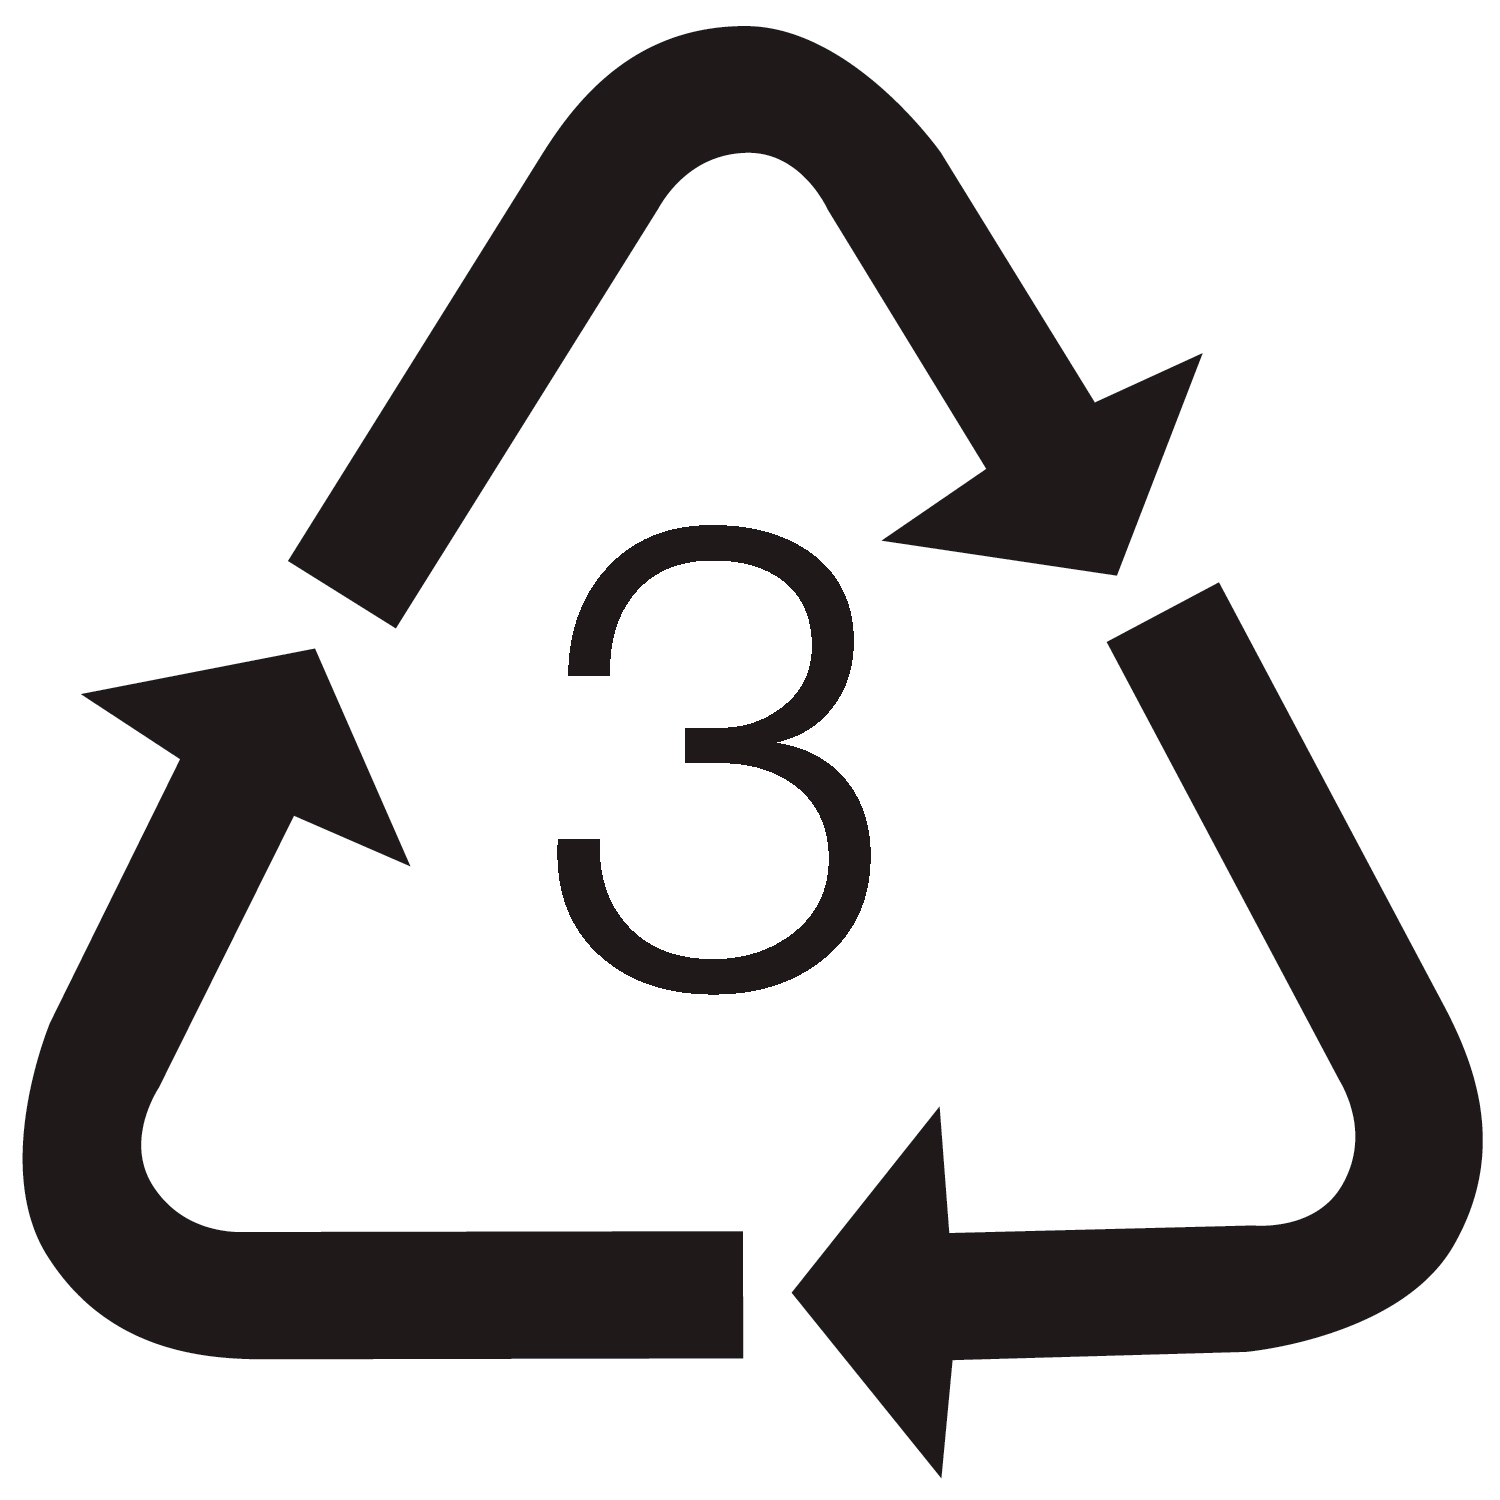 10 types of plastic learn recycling